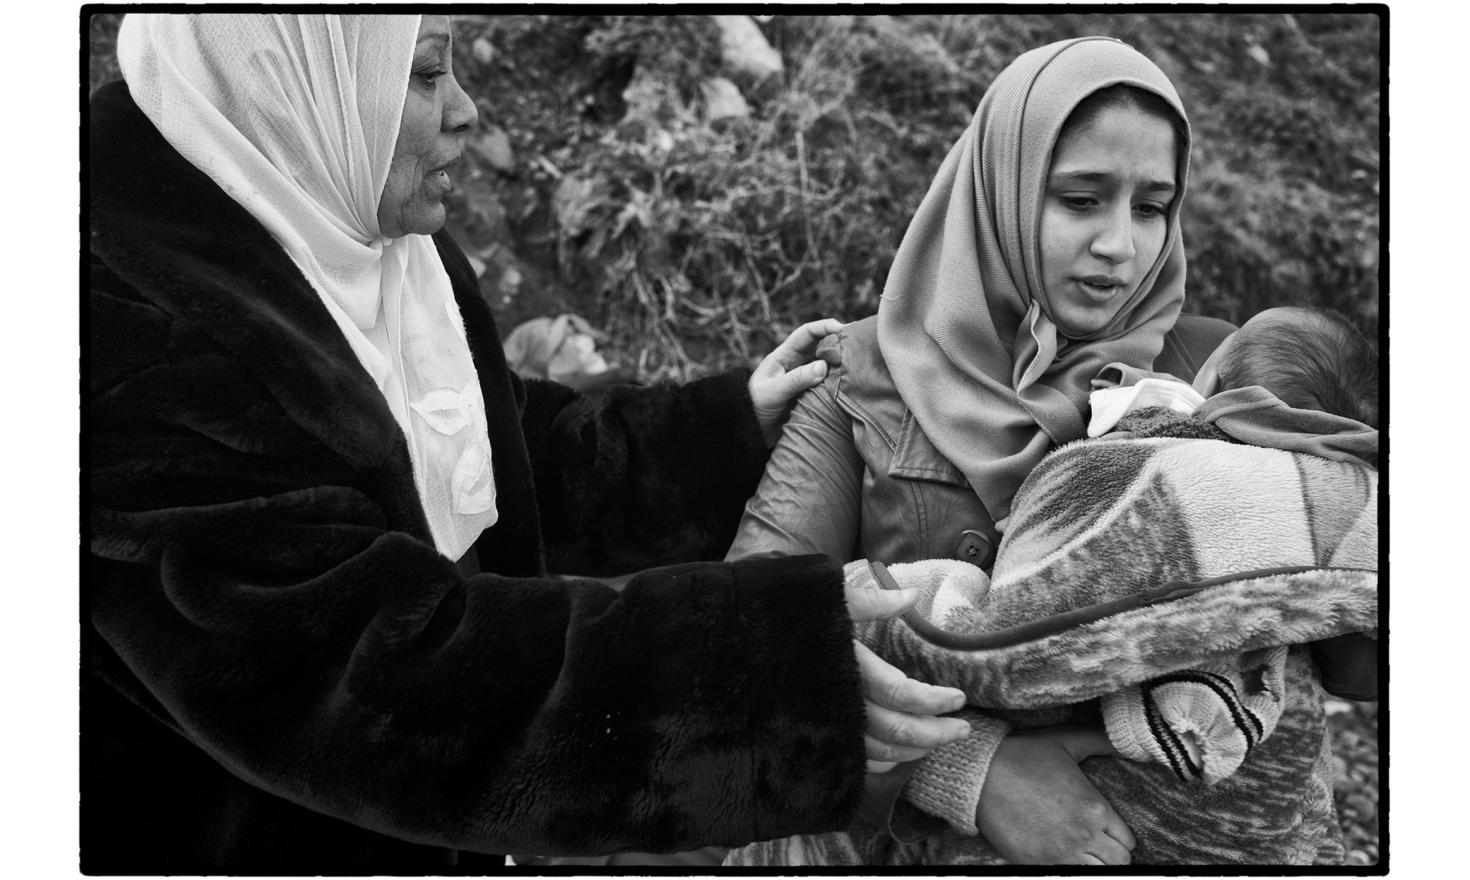 Lesbos, Greece. Something new has emerged in recent months: women and children now account for over half the passengers. Often four generations of the same family are fleeing war, violence or terror together.